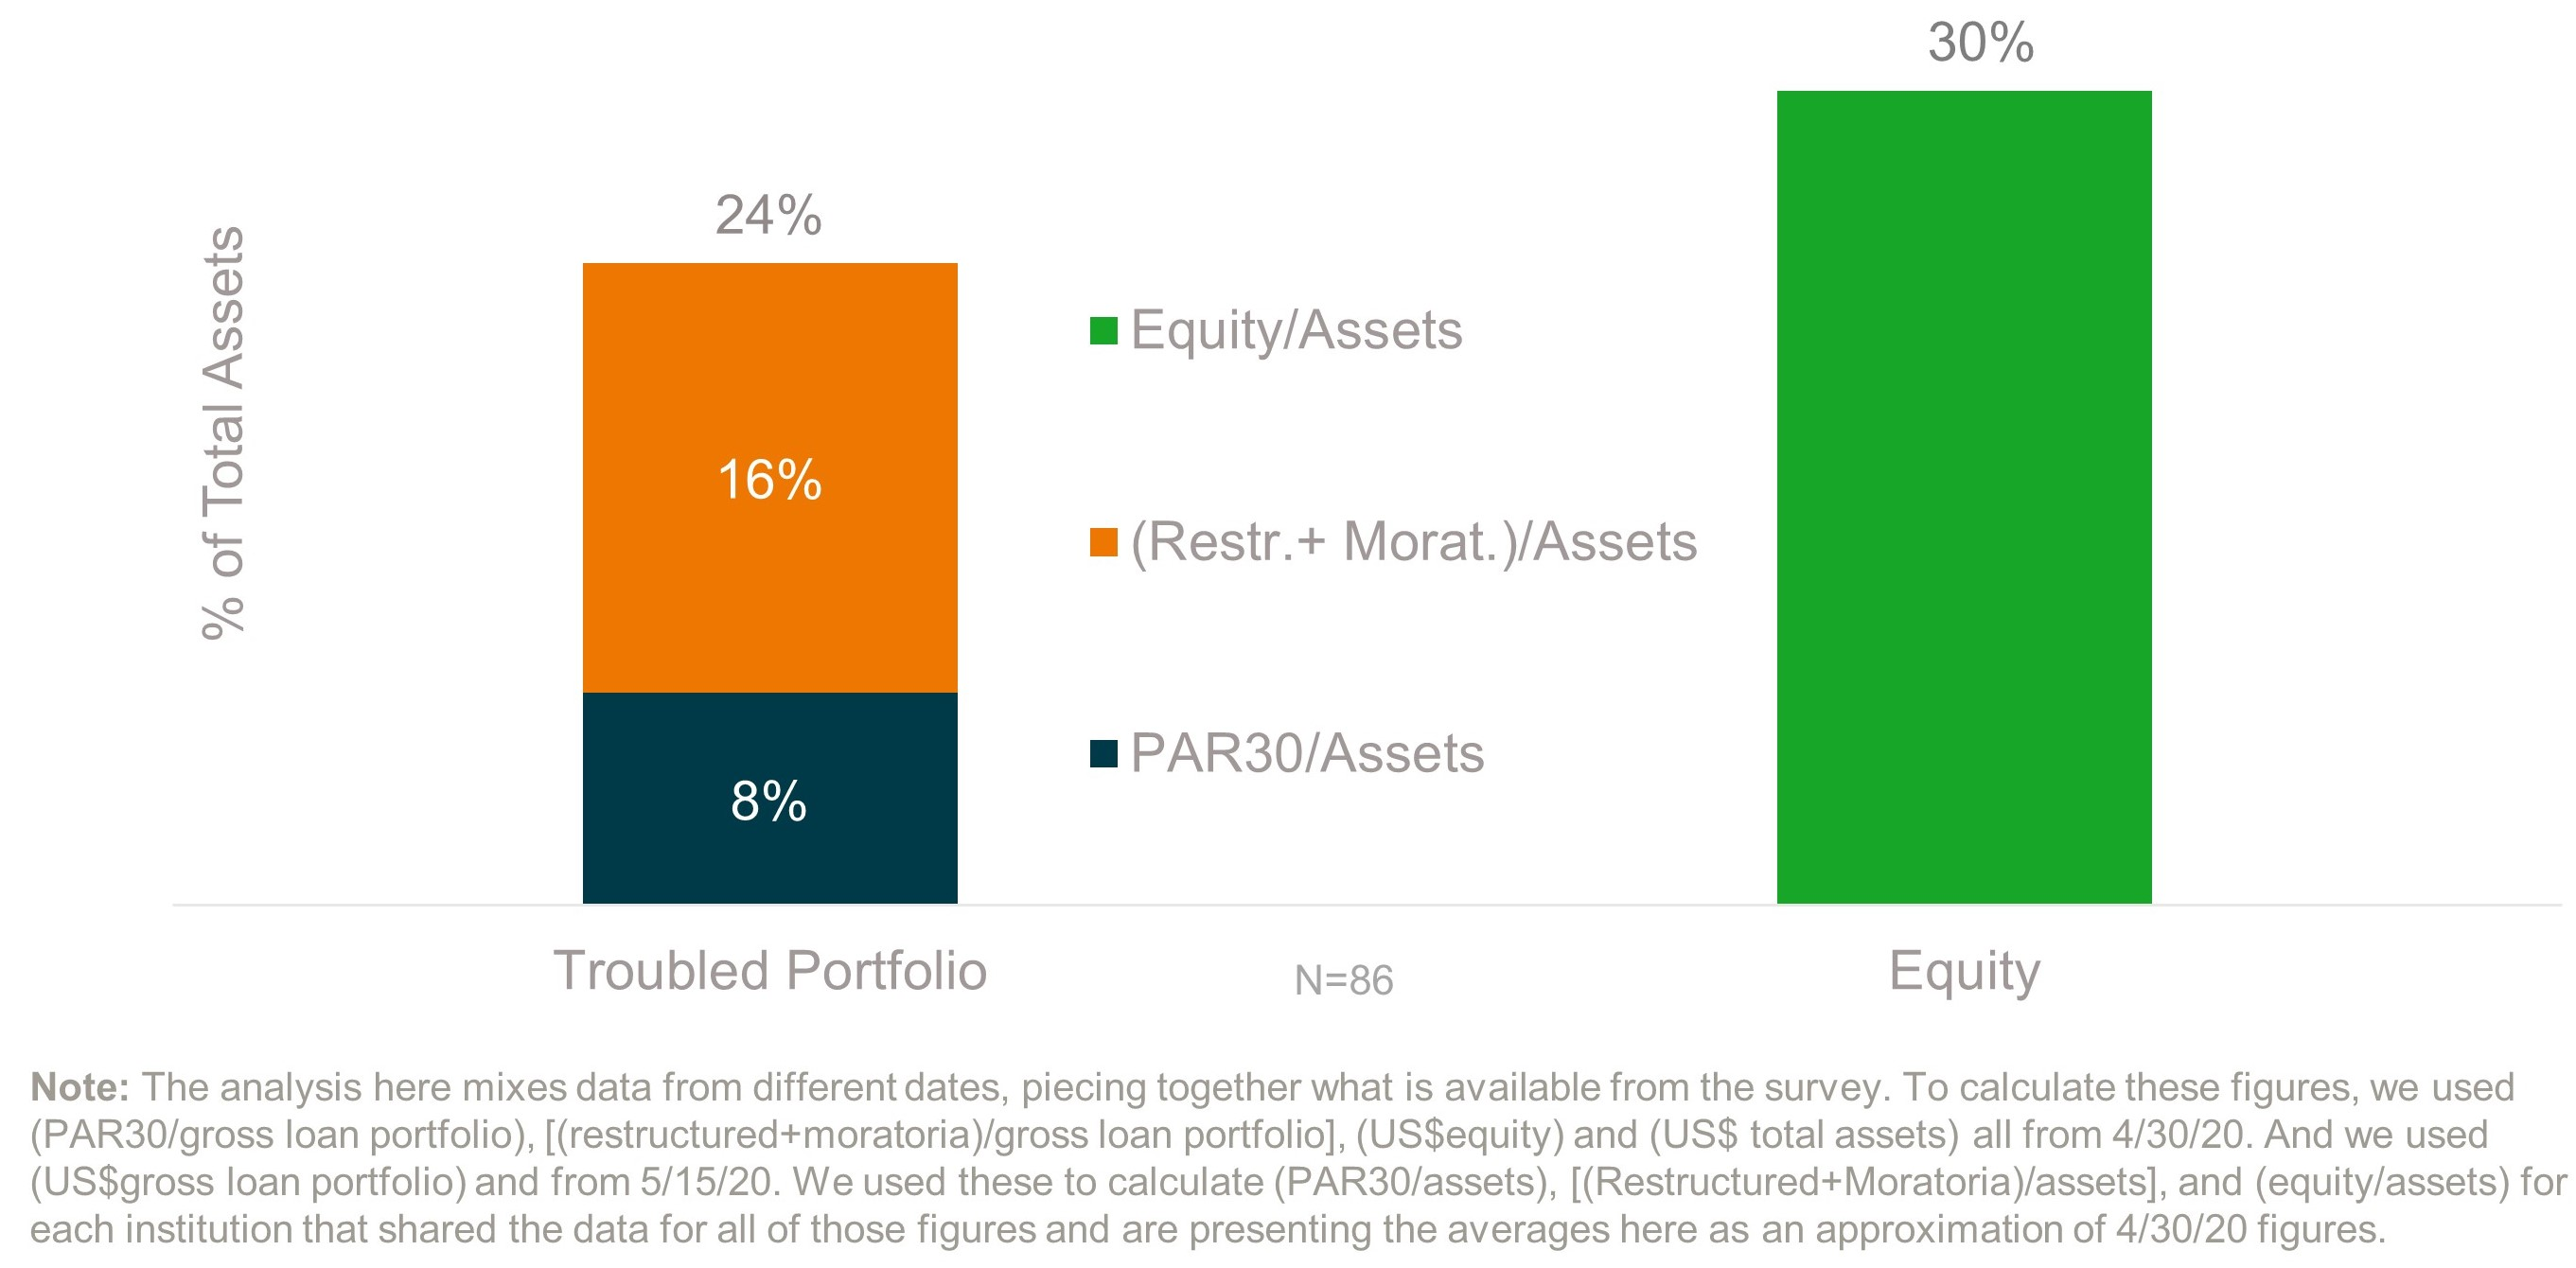 Troubled portfolio vs. equity for microfinance institutions during COVID-19